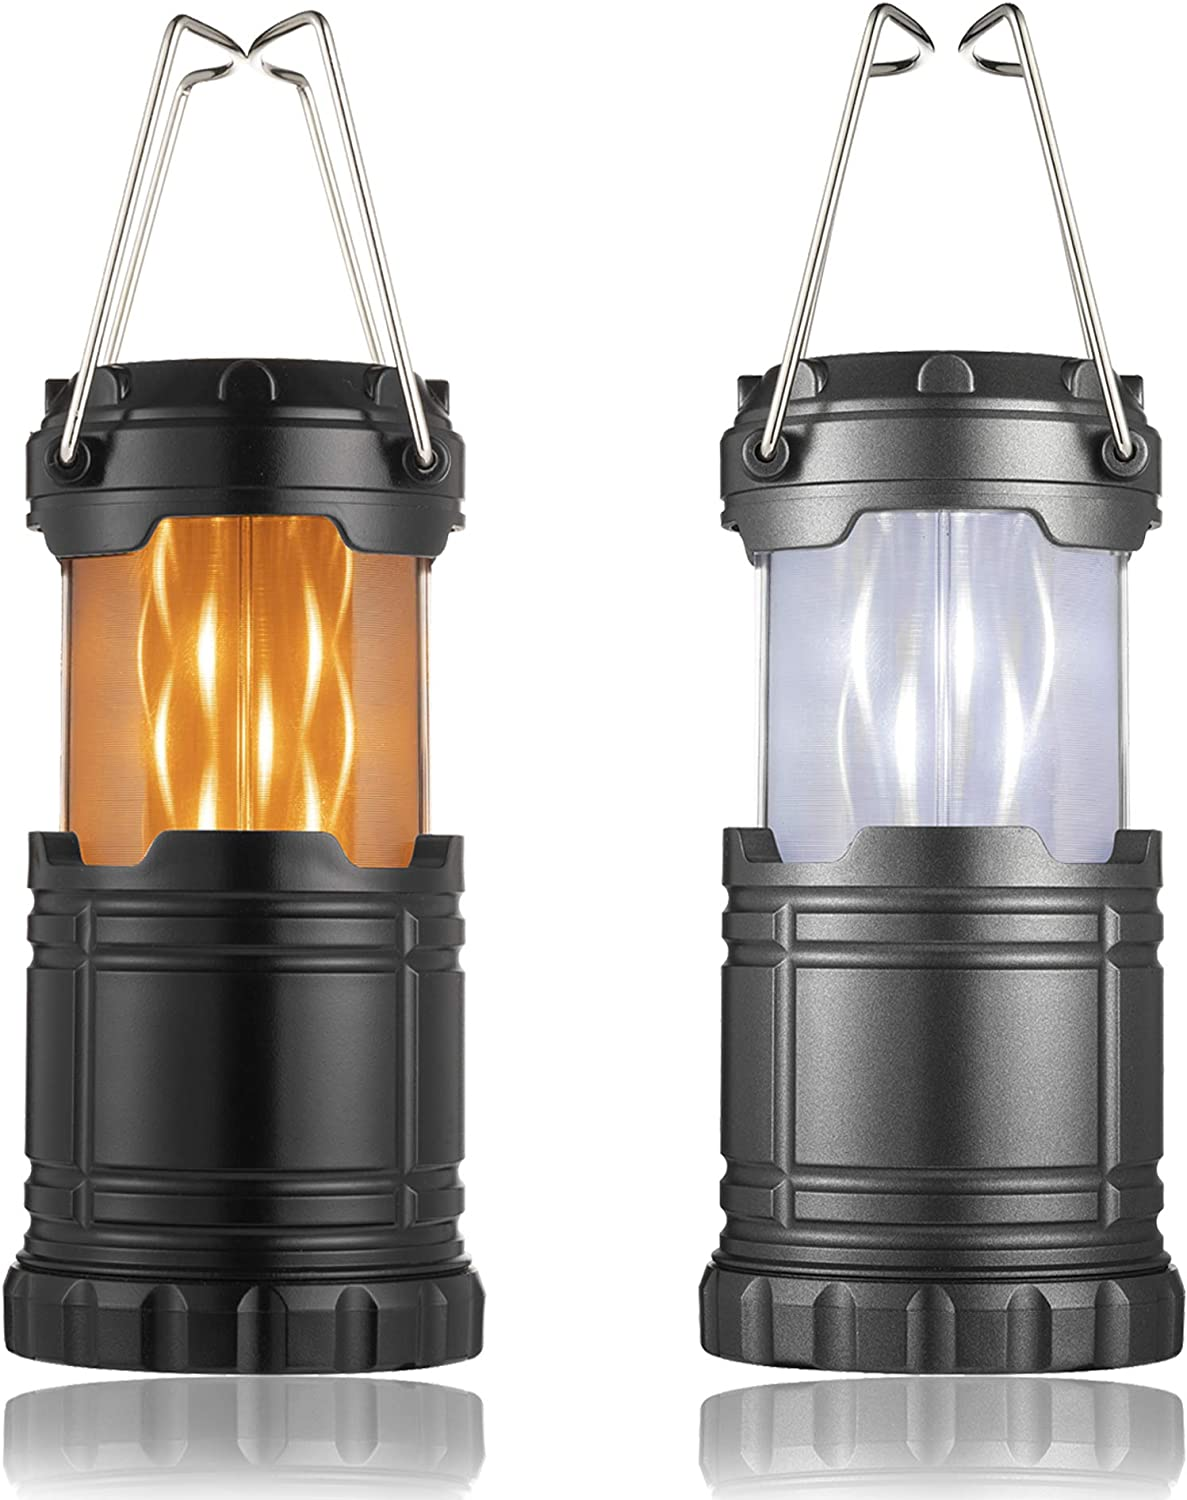 Irisvito Camping Lantern Camping Lights with Ultra Bright Lights and Flickering Flame Lights Collapsible Portable Mini LED Lantern, Waterproof Camping Lantern for Outdoor, Hiking, Hurricanes, 2 Pack